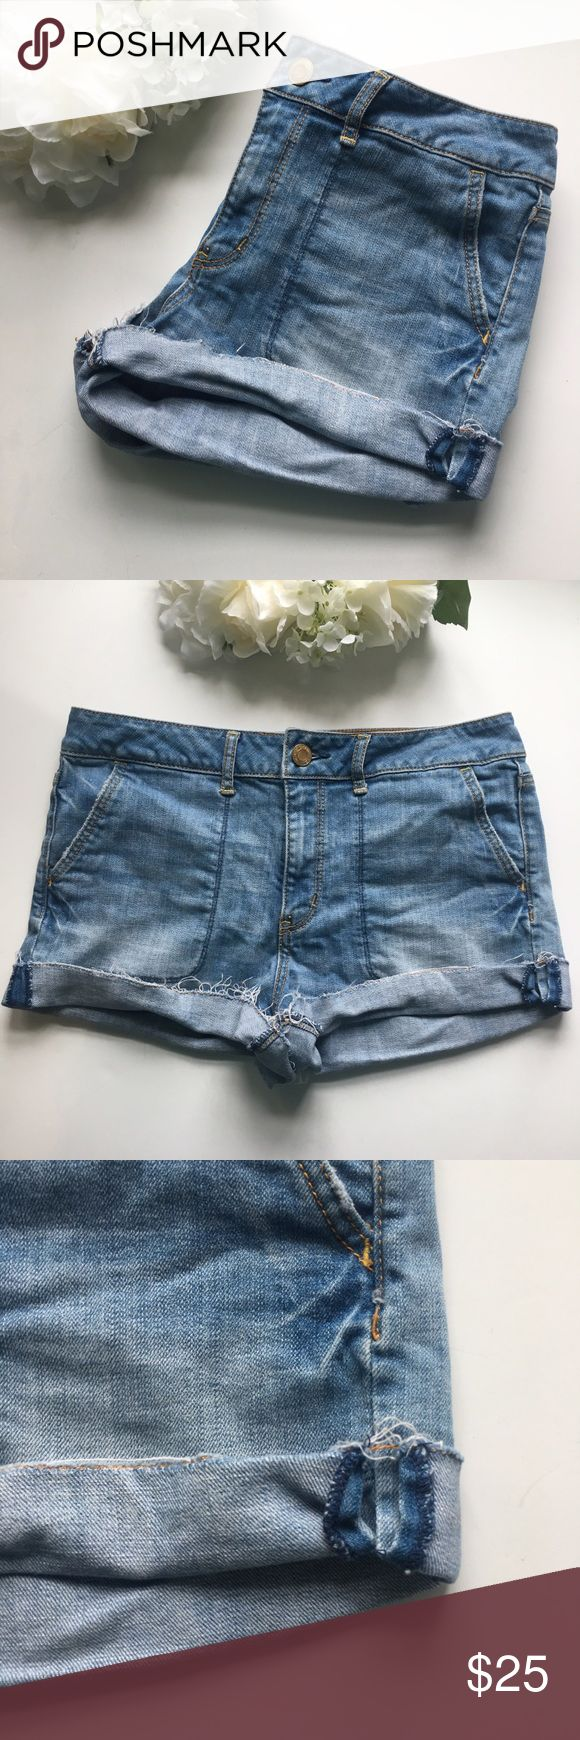 """American Eagle // Rolled Cuff Mid Rise Jean Shorts Pull on some curt off jeans from American Eagle Outfitters. Light wash. Mid rise 10"""". Big front pockets. Can be unrolled for longer length, 4"""" inseam. In great condition, small flaw on the left leg, the seam is coming undone.   Measurements (approx): Waist 34"""" Hips 36"""" Length 12"""" uncuffed Rise 10""""  Love item, but not the price? Make an offer through the offer button or bundle your likes for a private discount! American Eagle Outfitters…"""